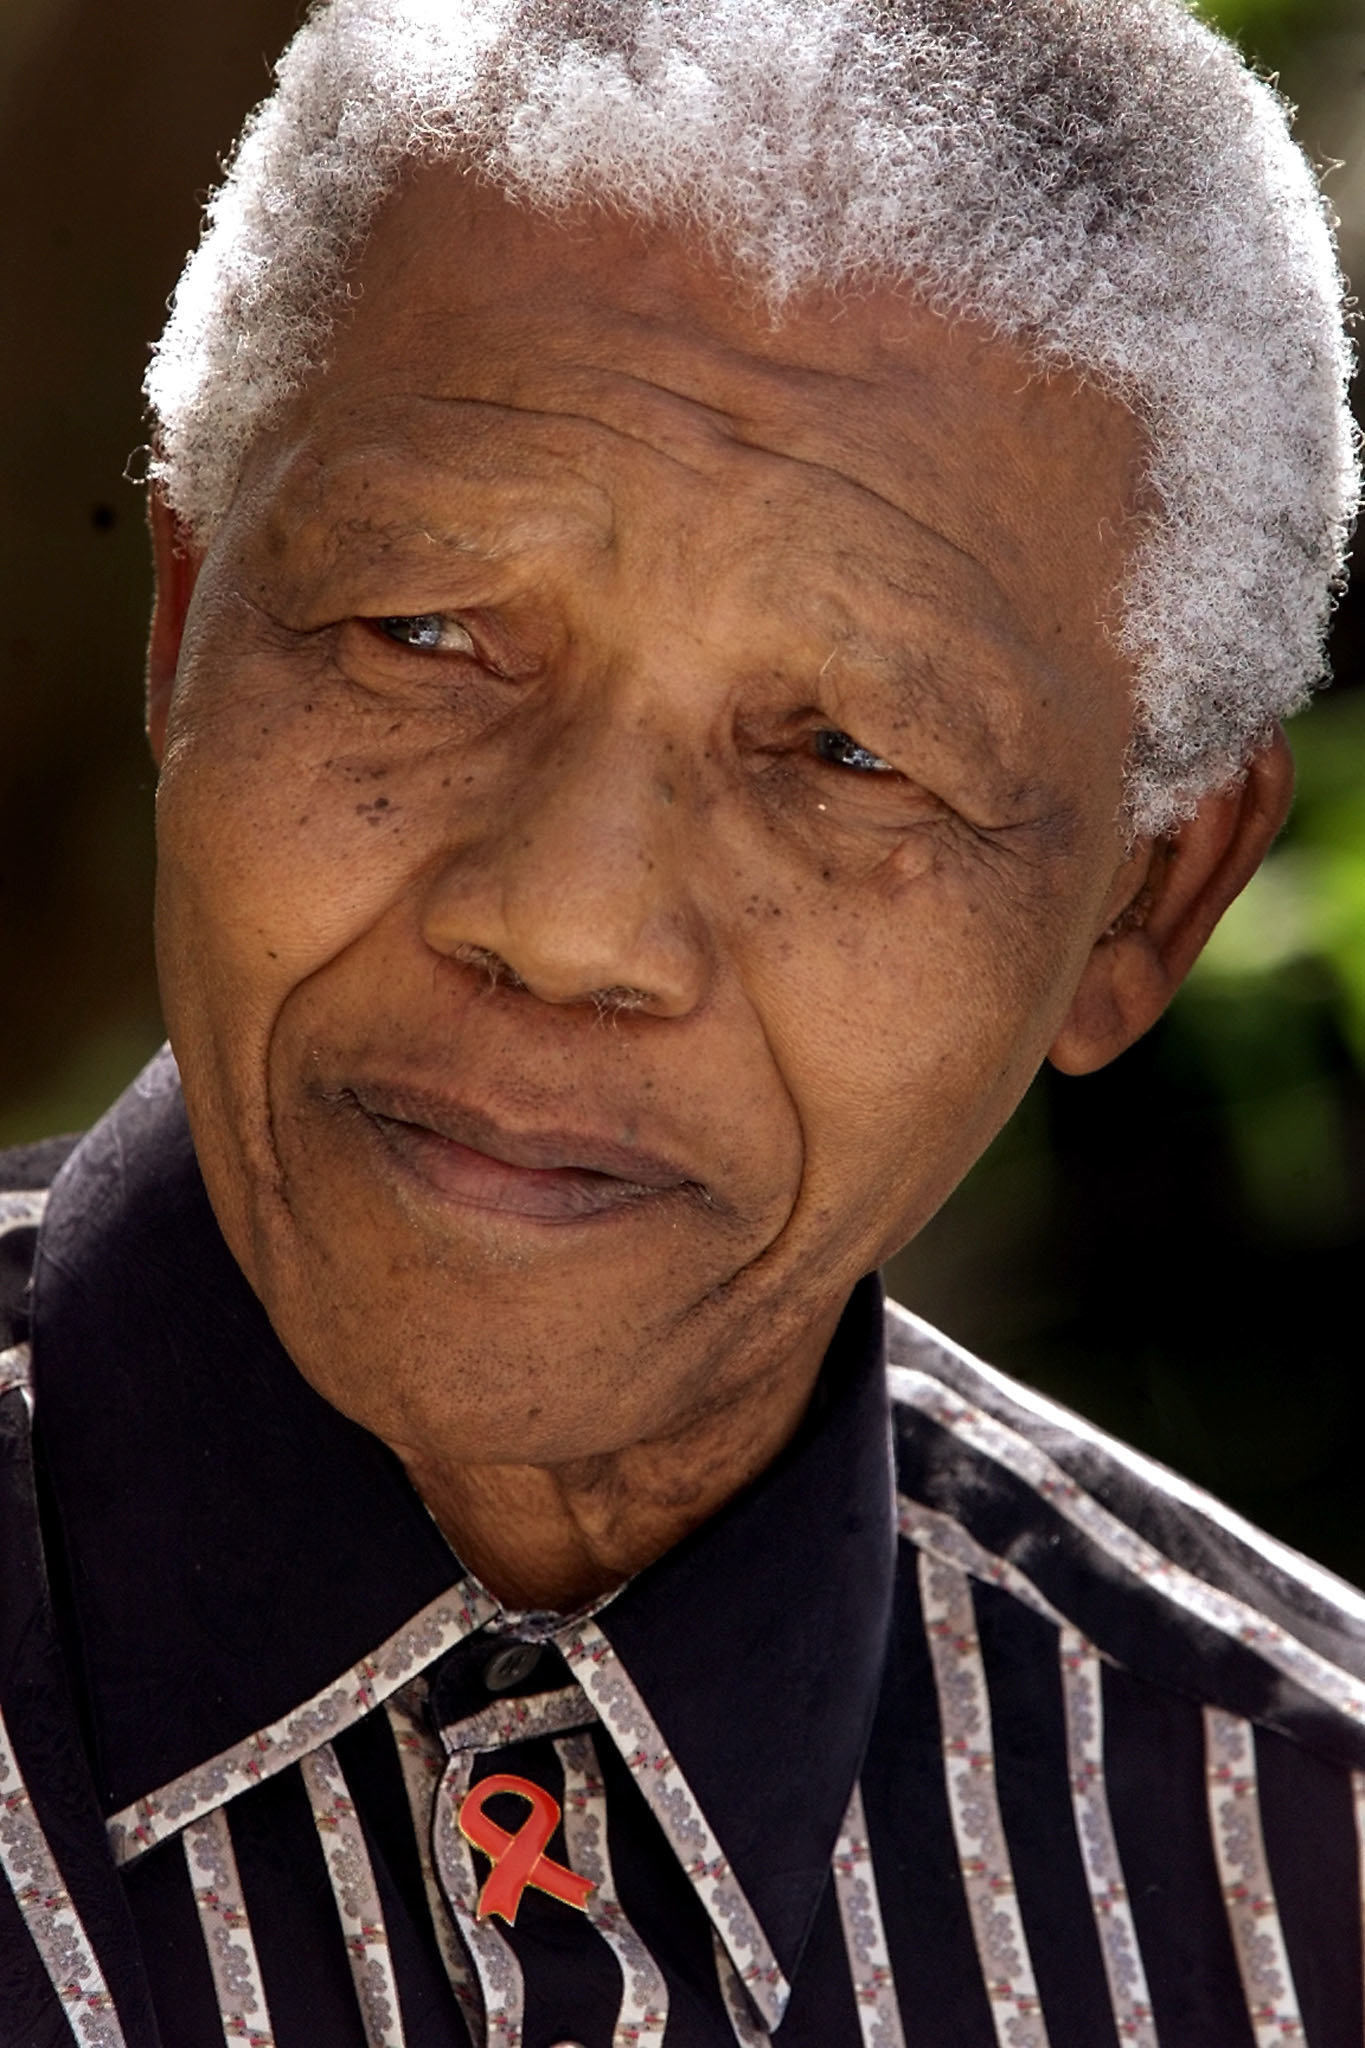 Nelson Mandela s Life and Times in Photographs - Latest Stories Nelson mandela a life in photographs